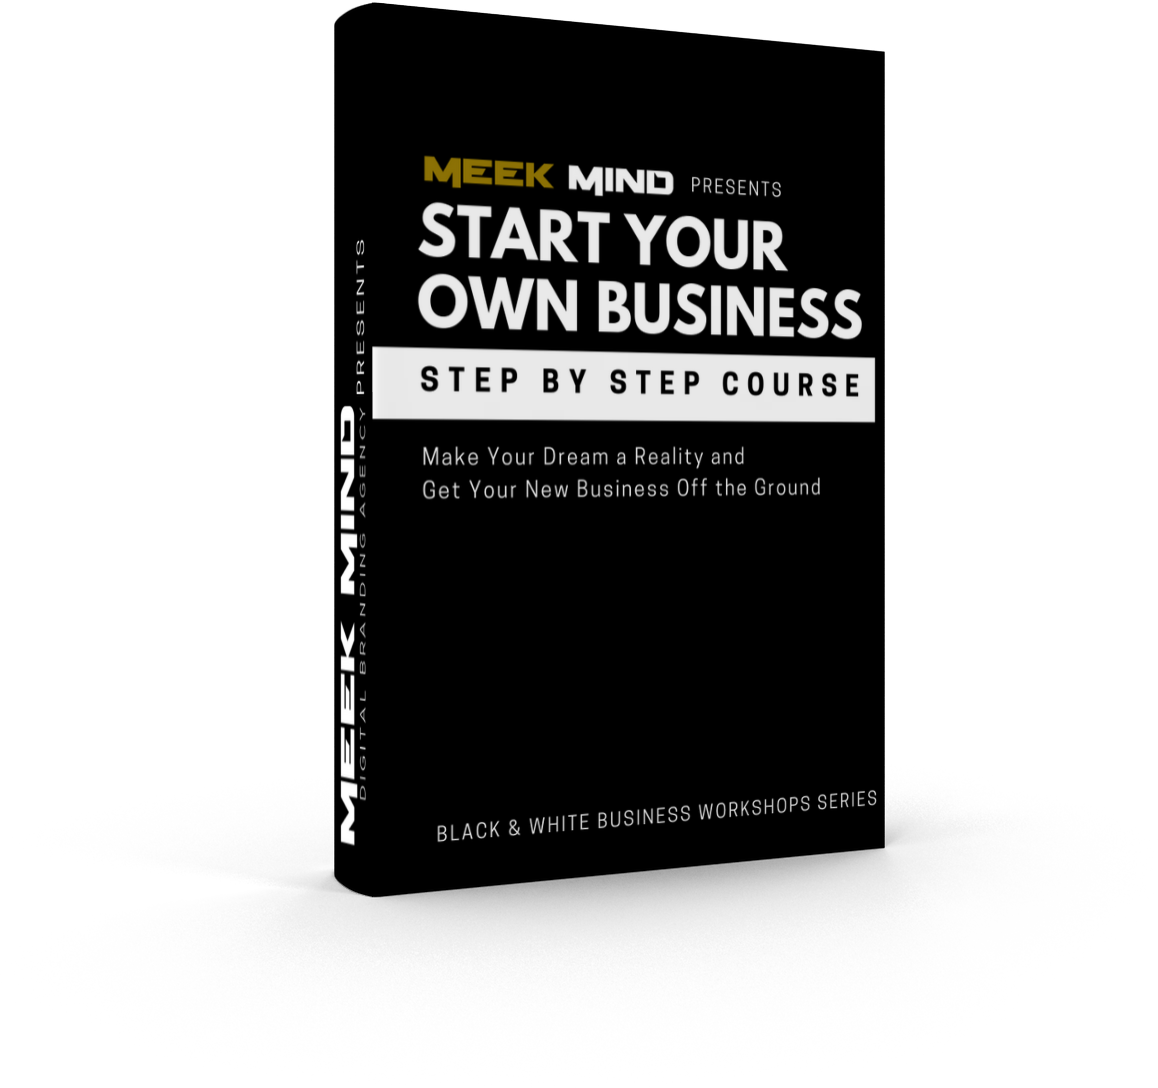 START YOUR OWN BUSINESS STEP-BY-STEP COURSE